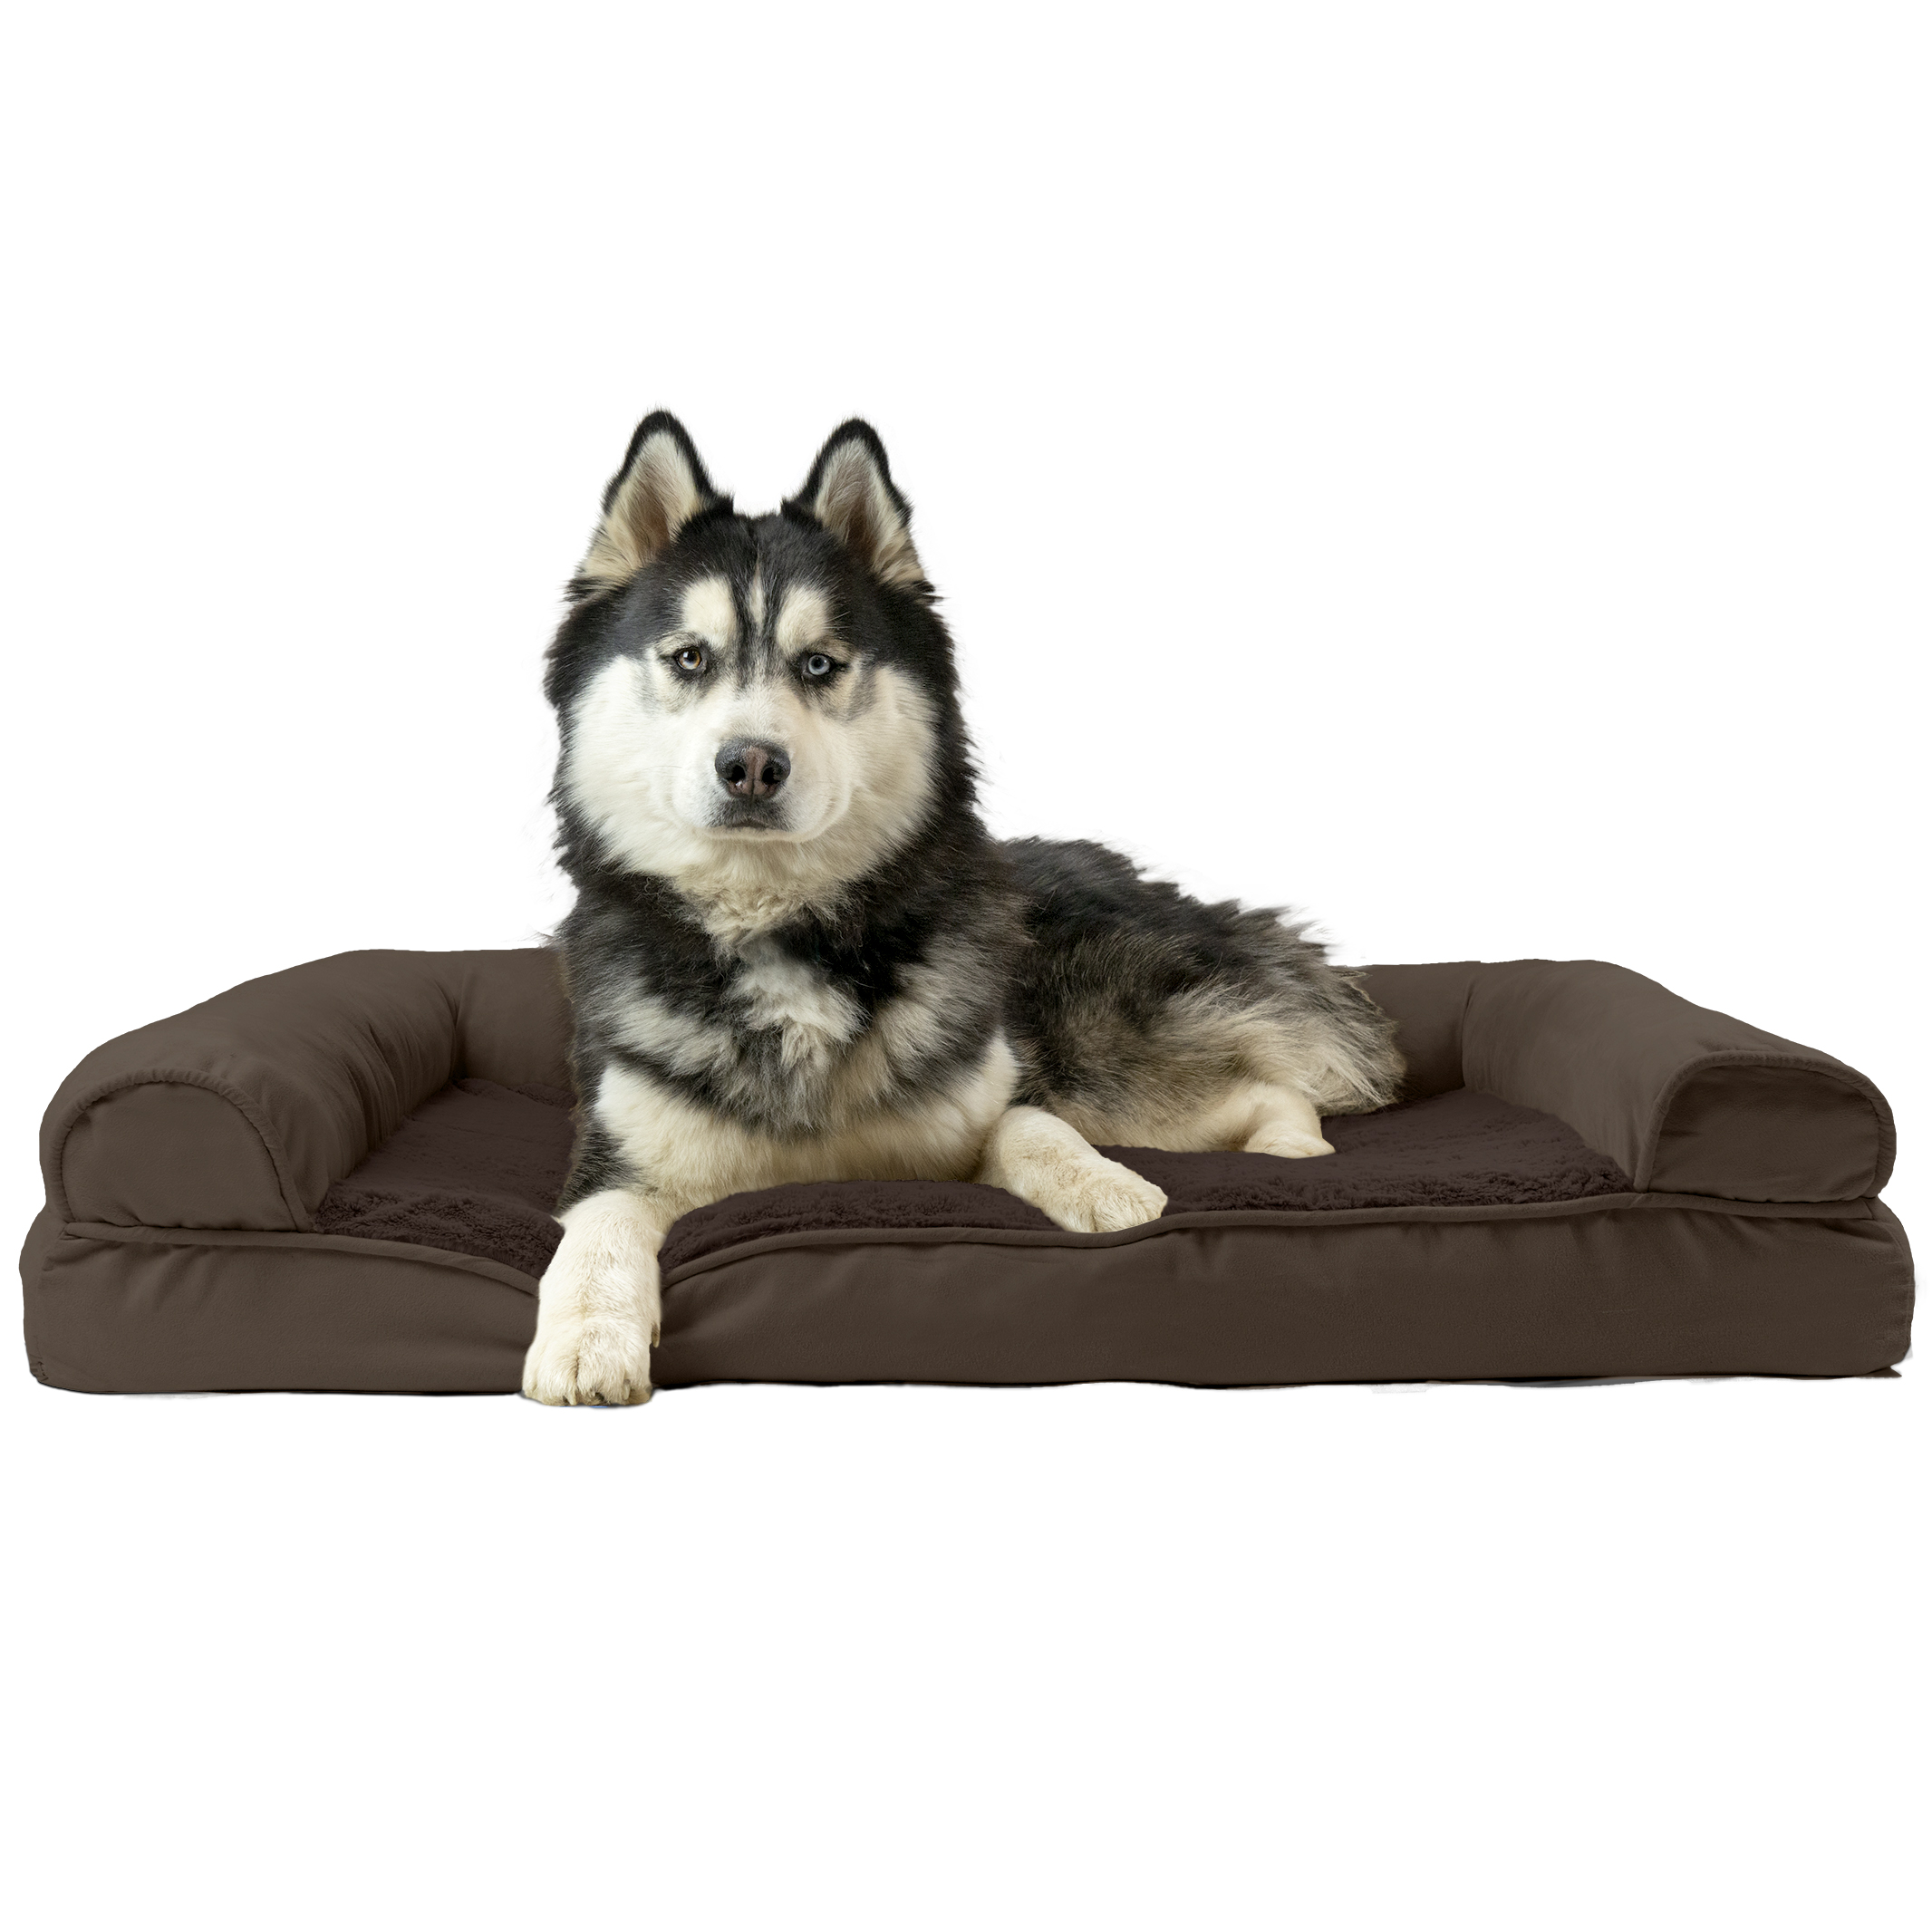 FurHaven Pet Dog Bed | Cooling Gel Memory Foam Orthopedic Ultra-Plush Sofa-Style Couch Pet Bed for Dogs & Cats, Espresso, Jumbo